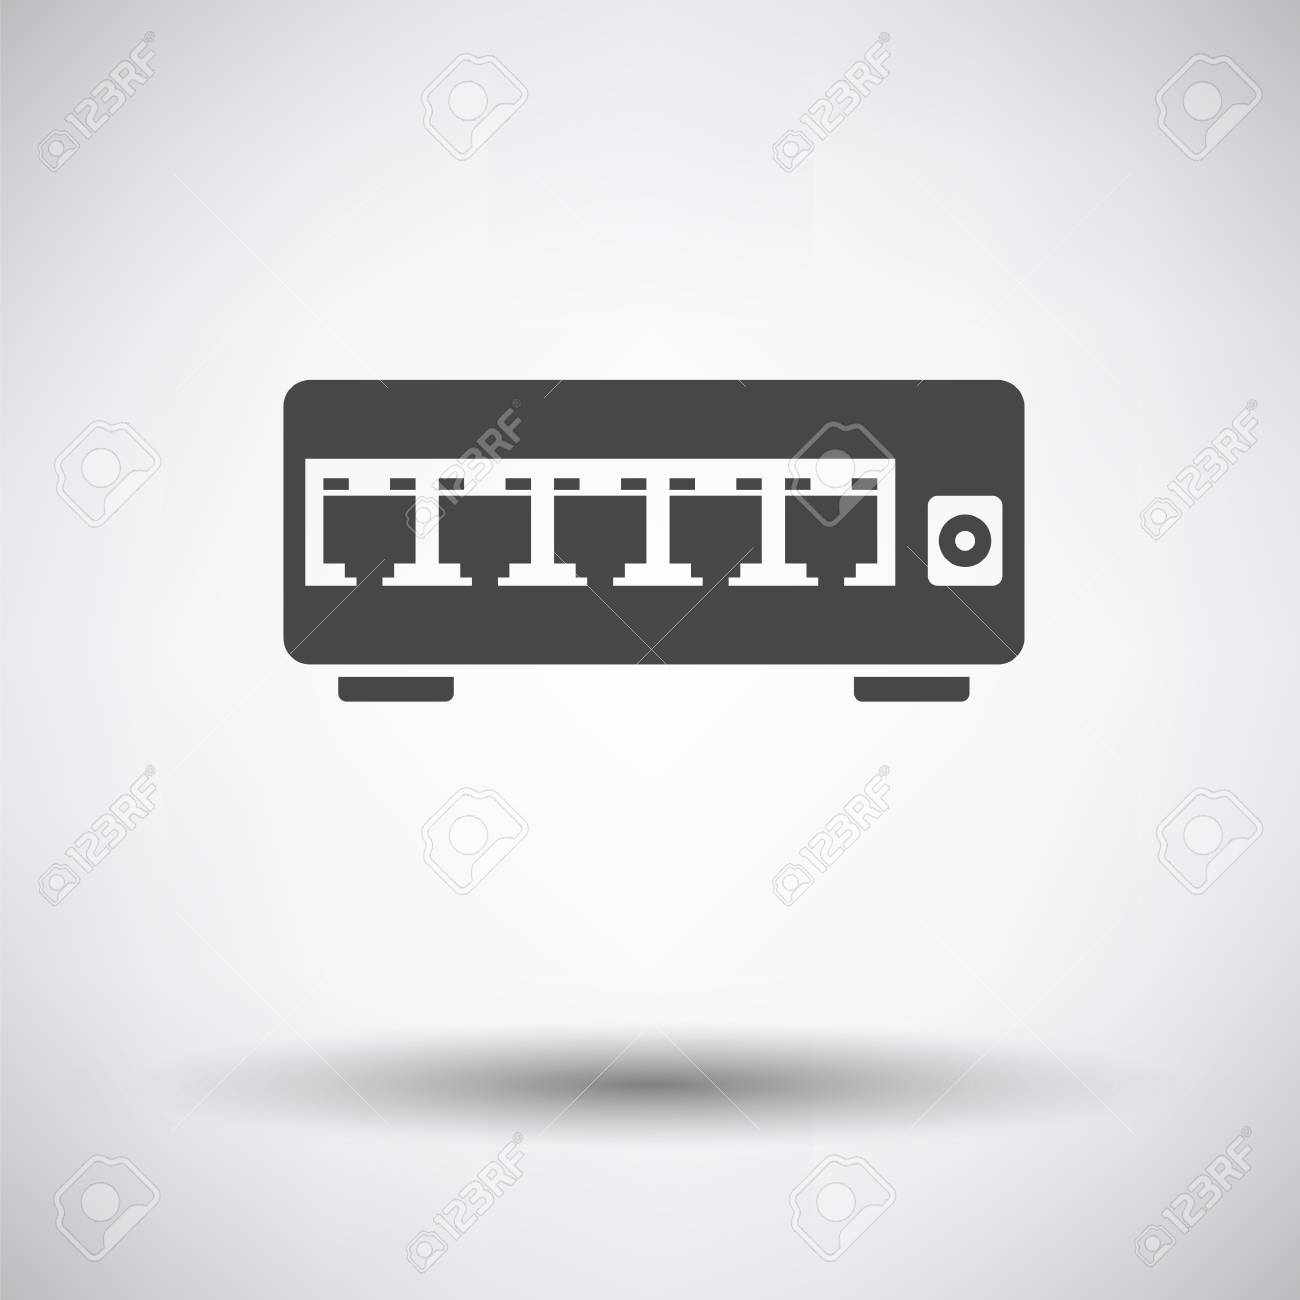 internet switch icon on gray background, round shadow. Vector illustration. - 59604637